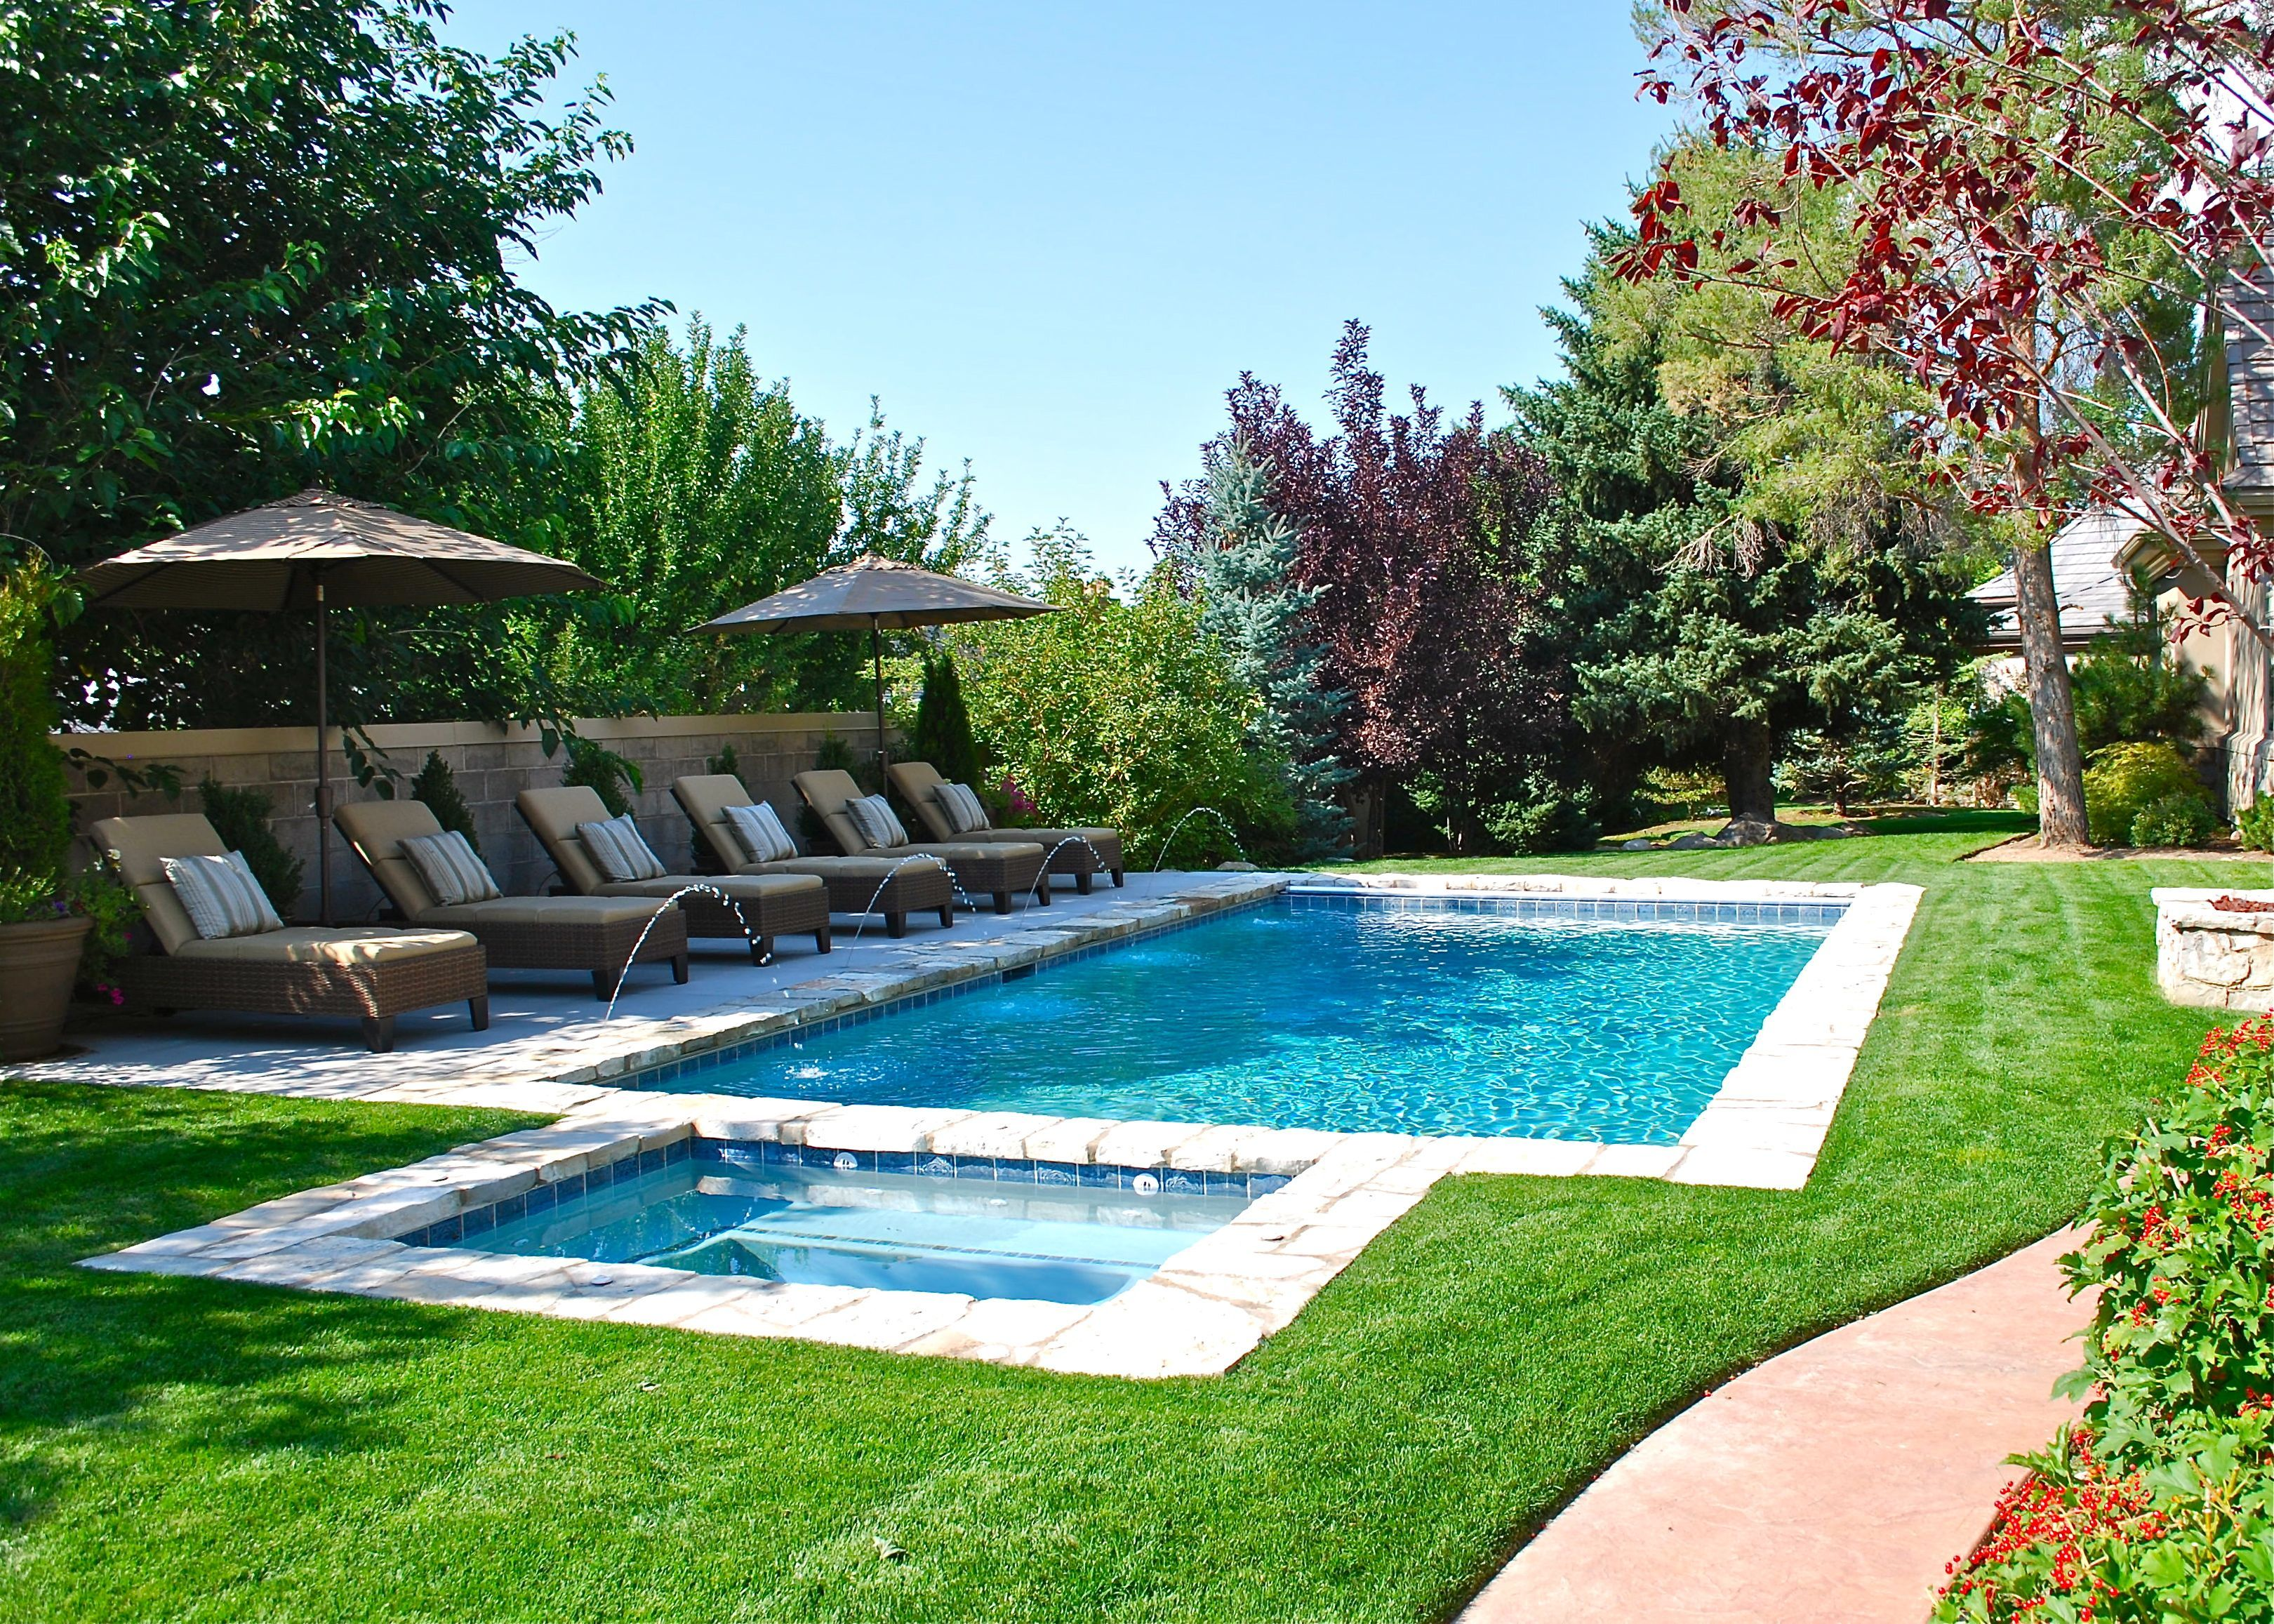 Backyard swimming pool with minimal decking deckjets and for Swimming pool landscape design